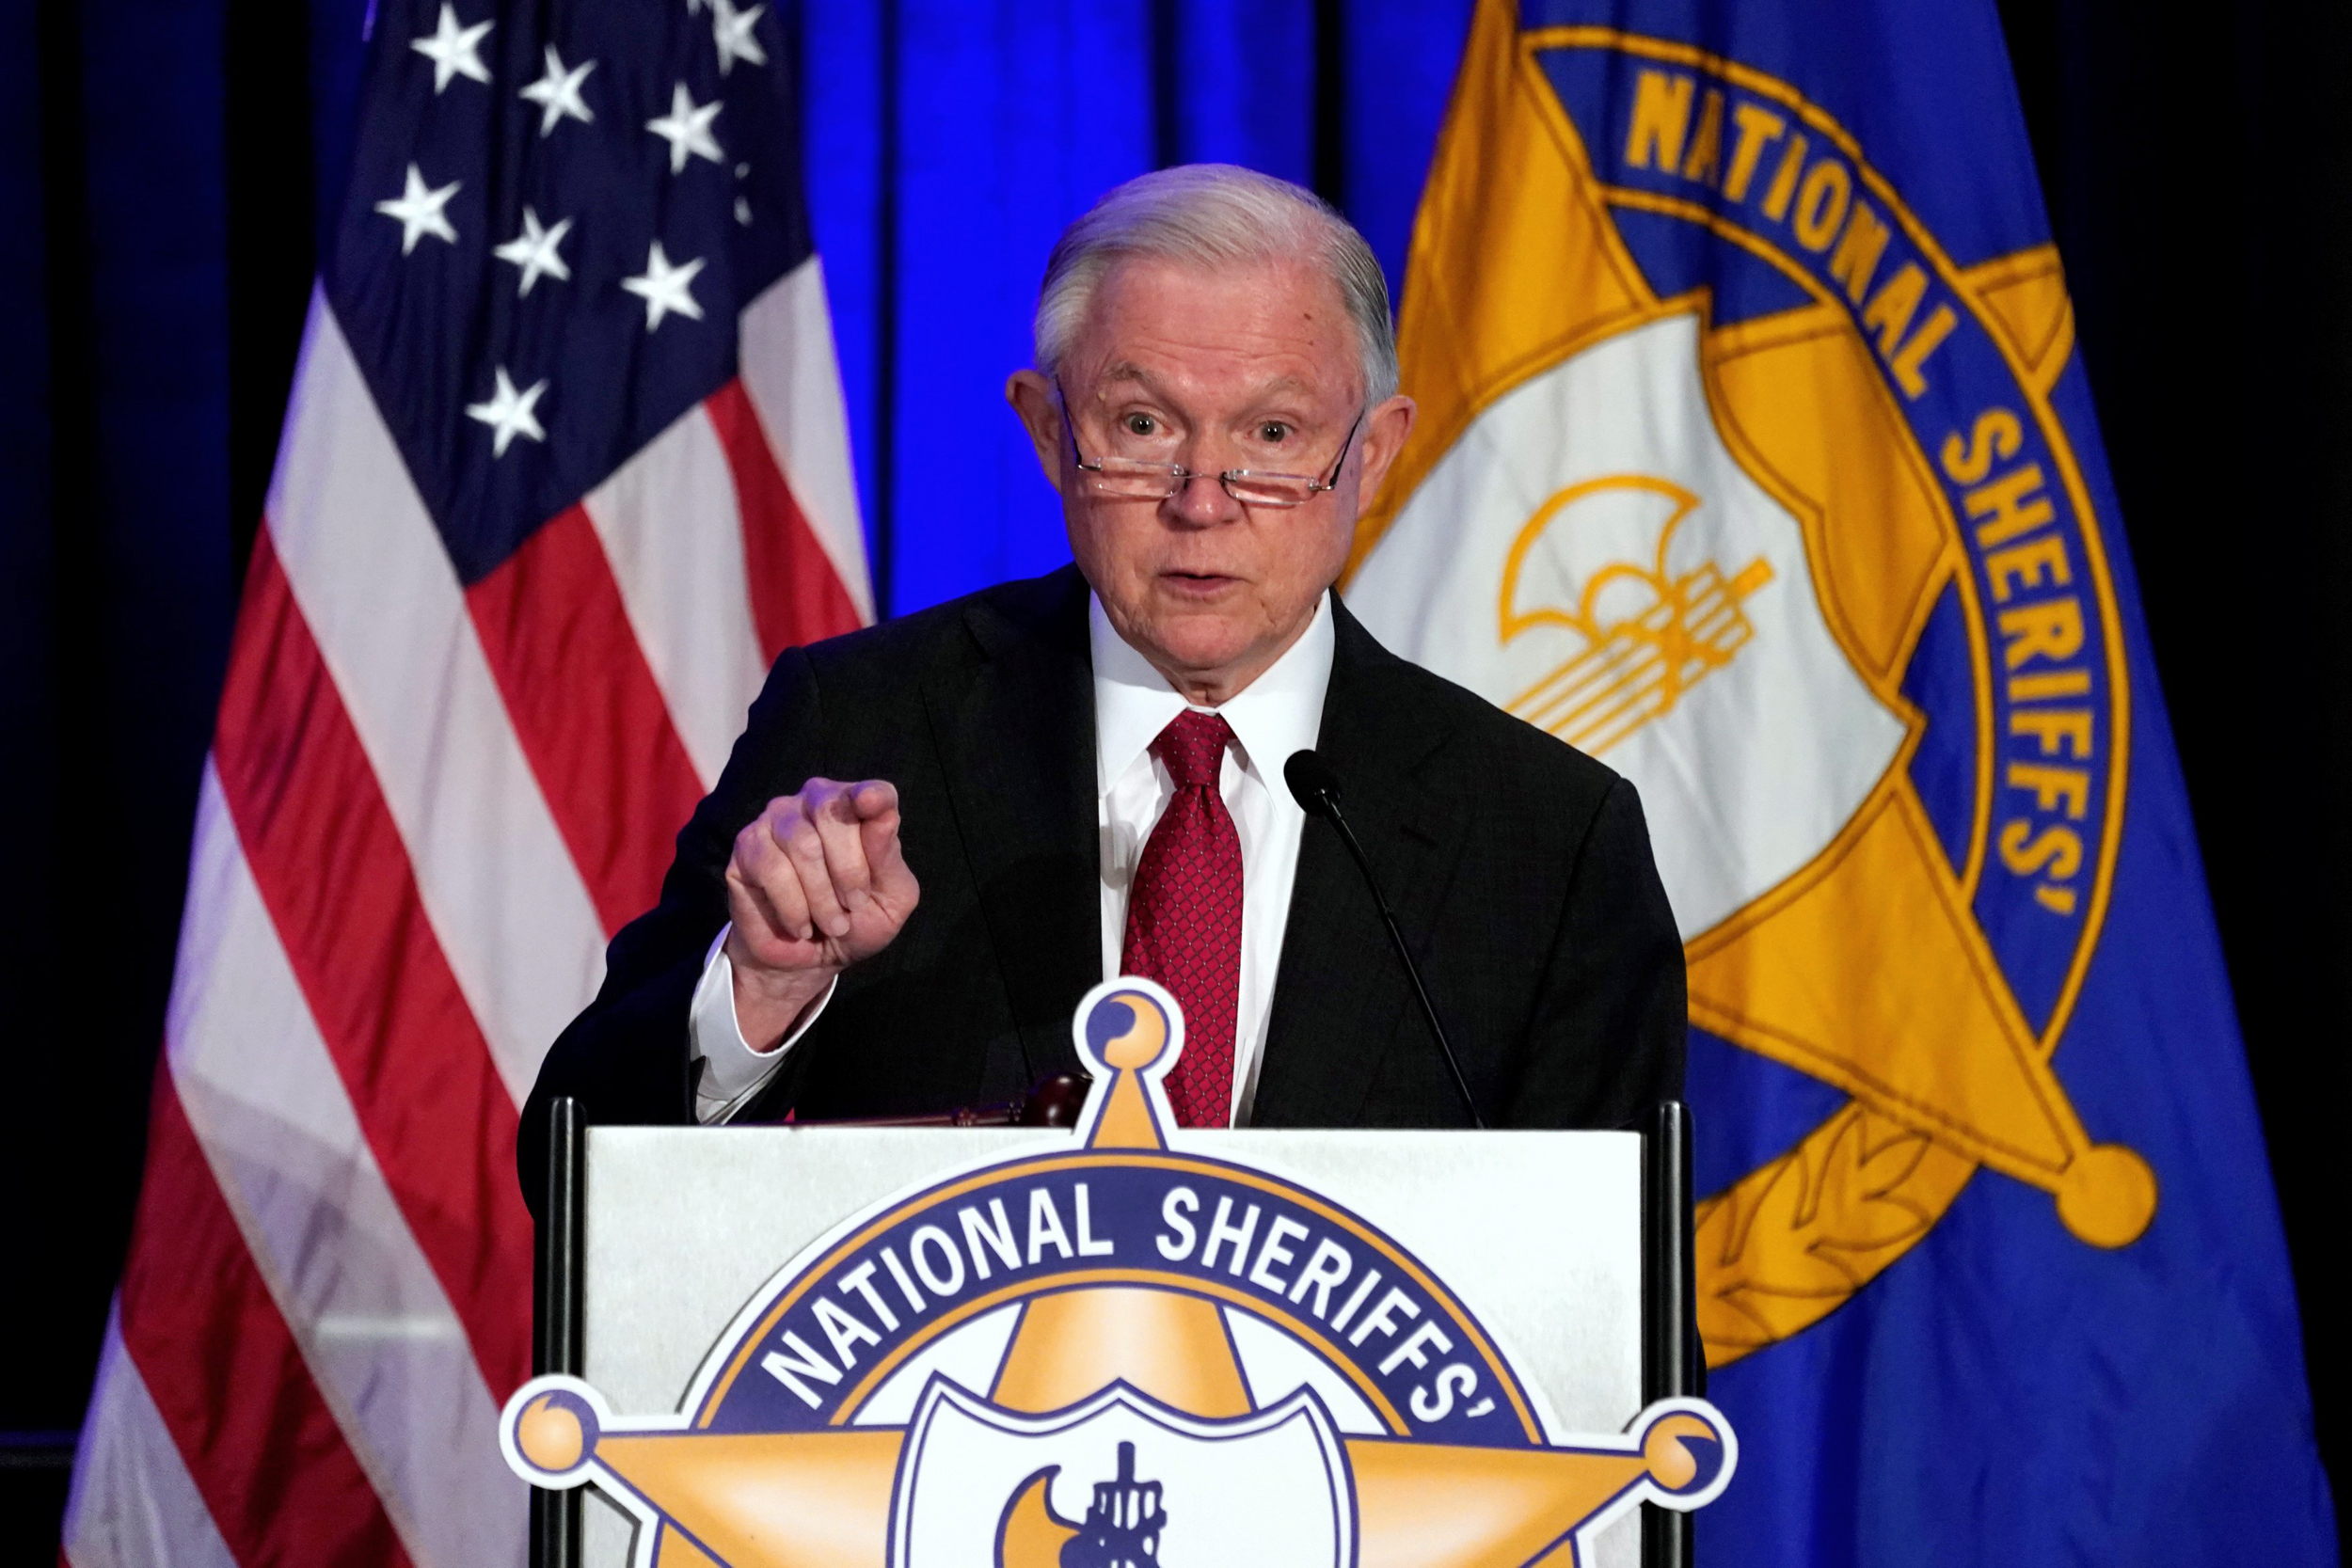 Jeff Sessions remarks on 'Anglo-American heritage of law enforcement'